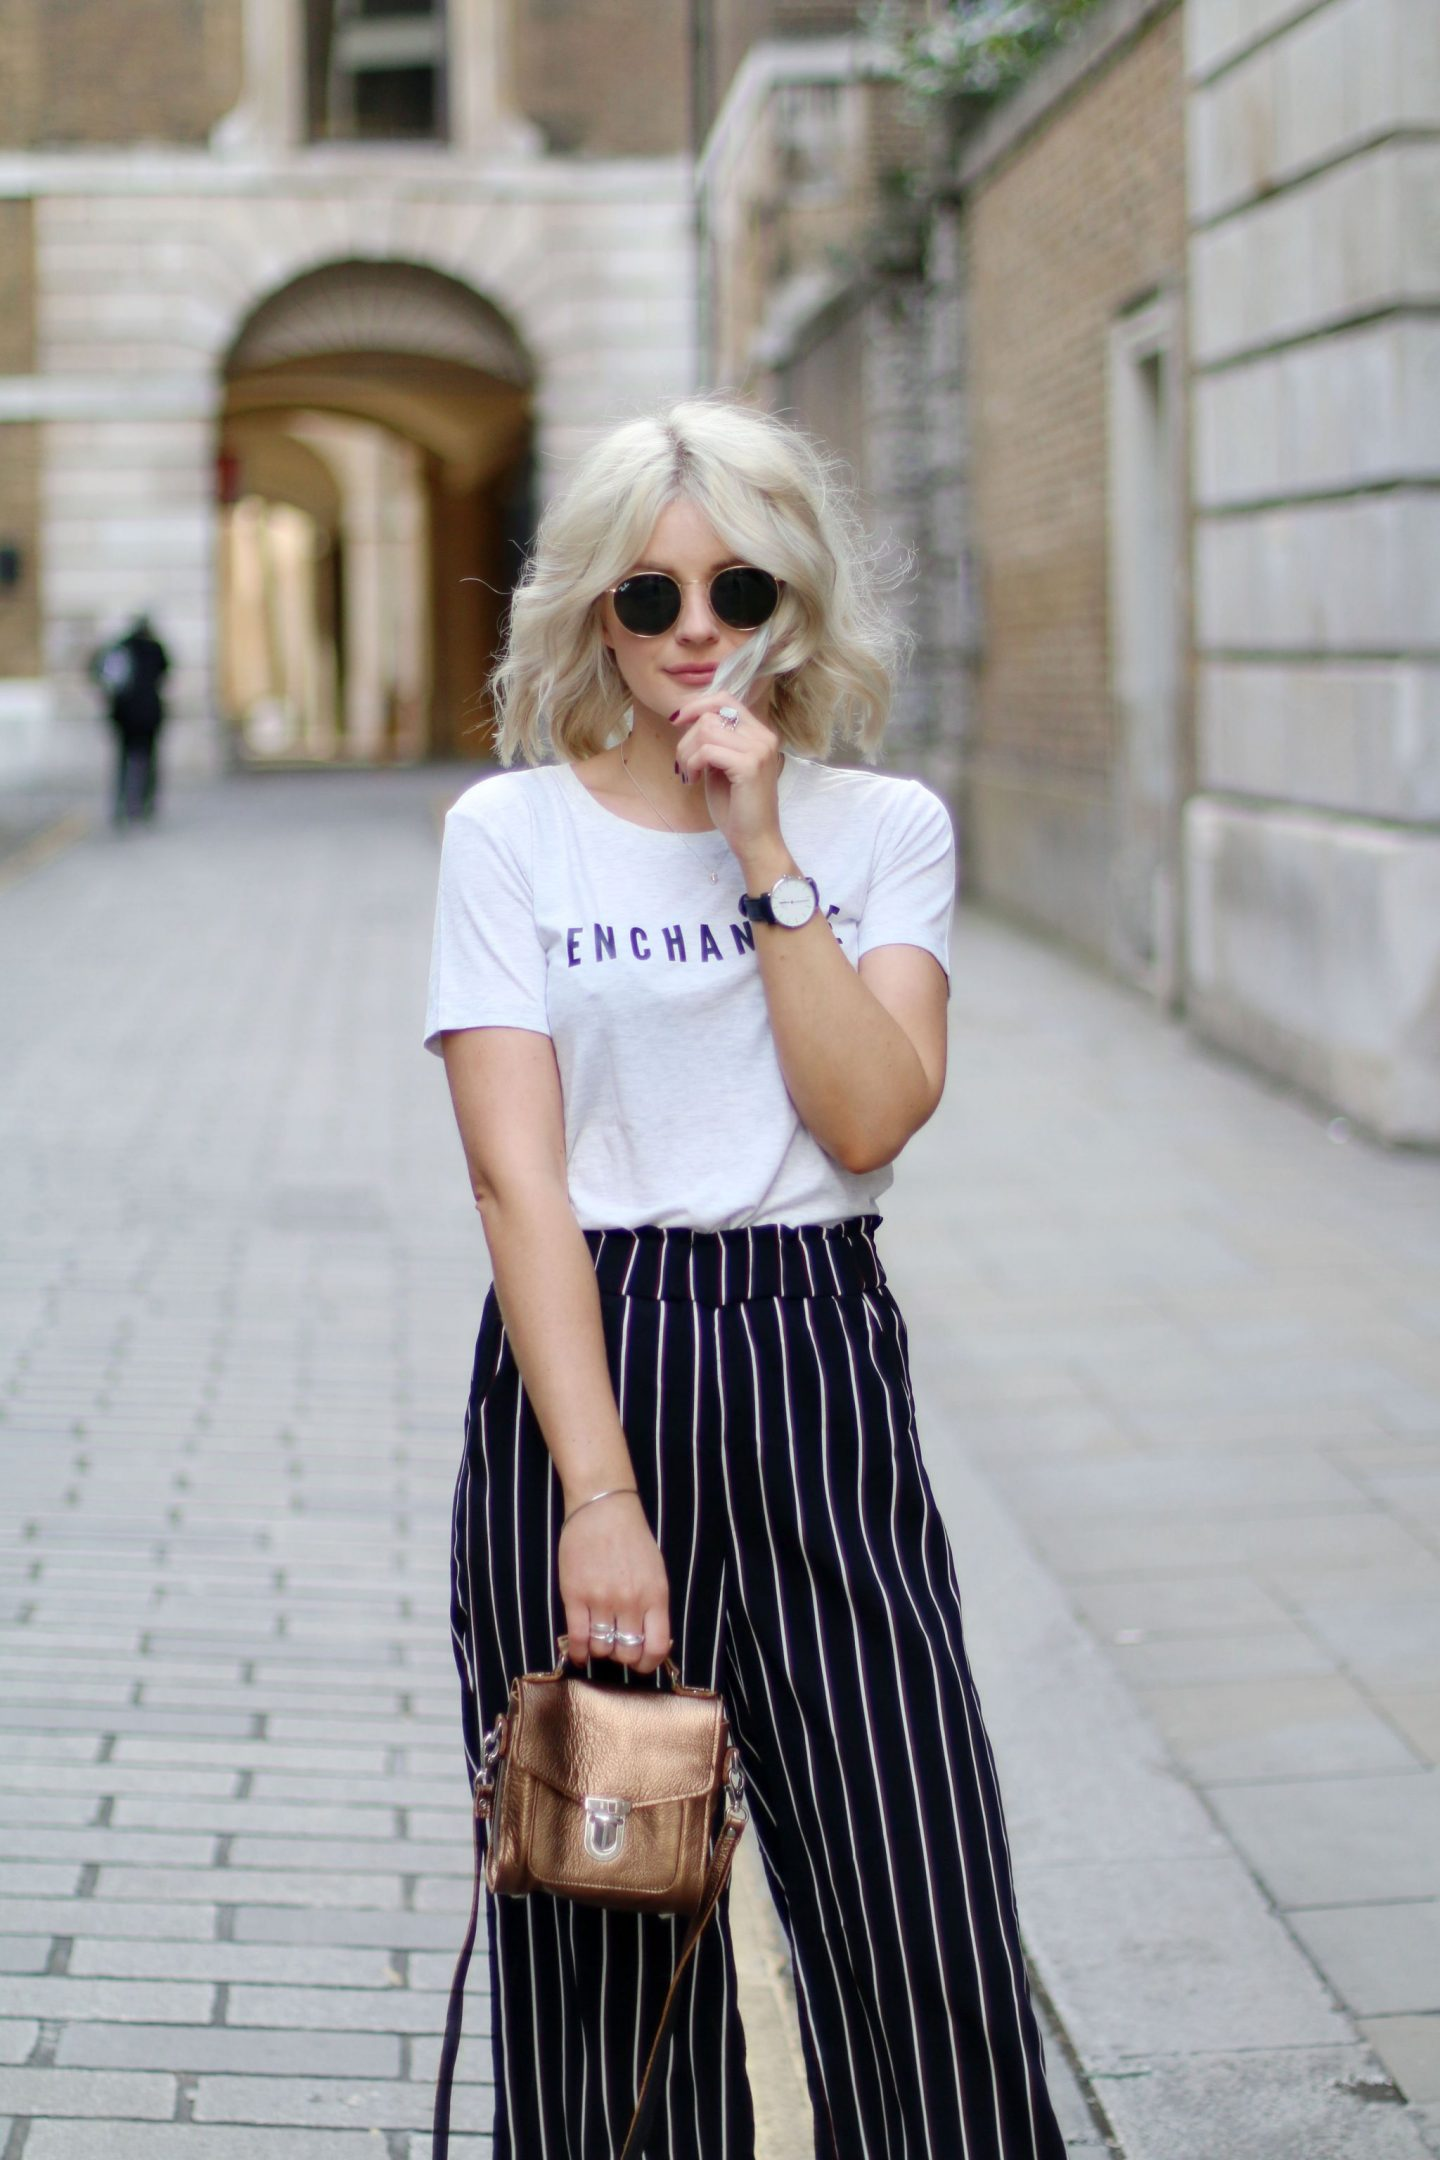 MAKE A STATEMENT WITH SLOGAN TEES